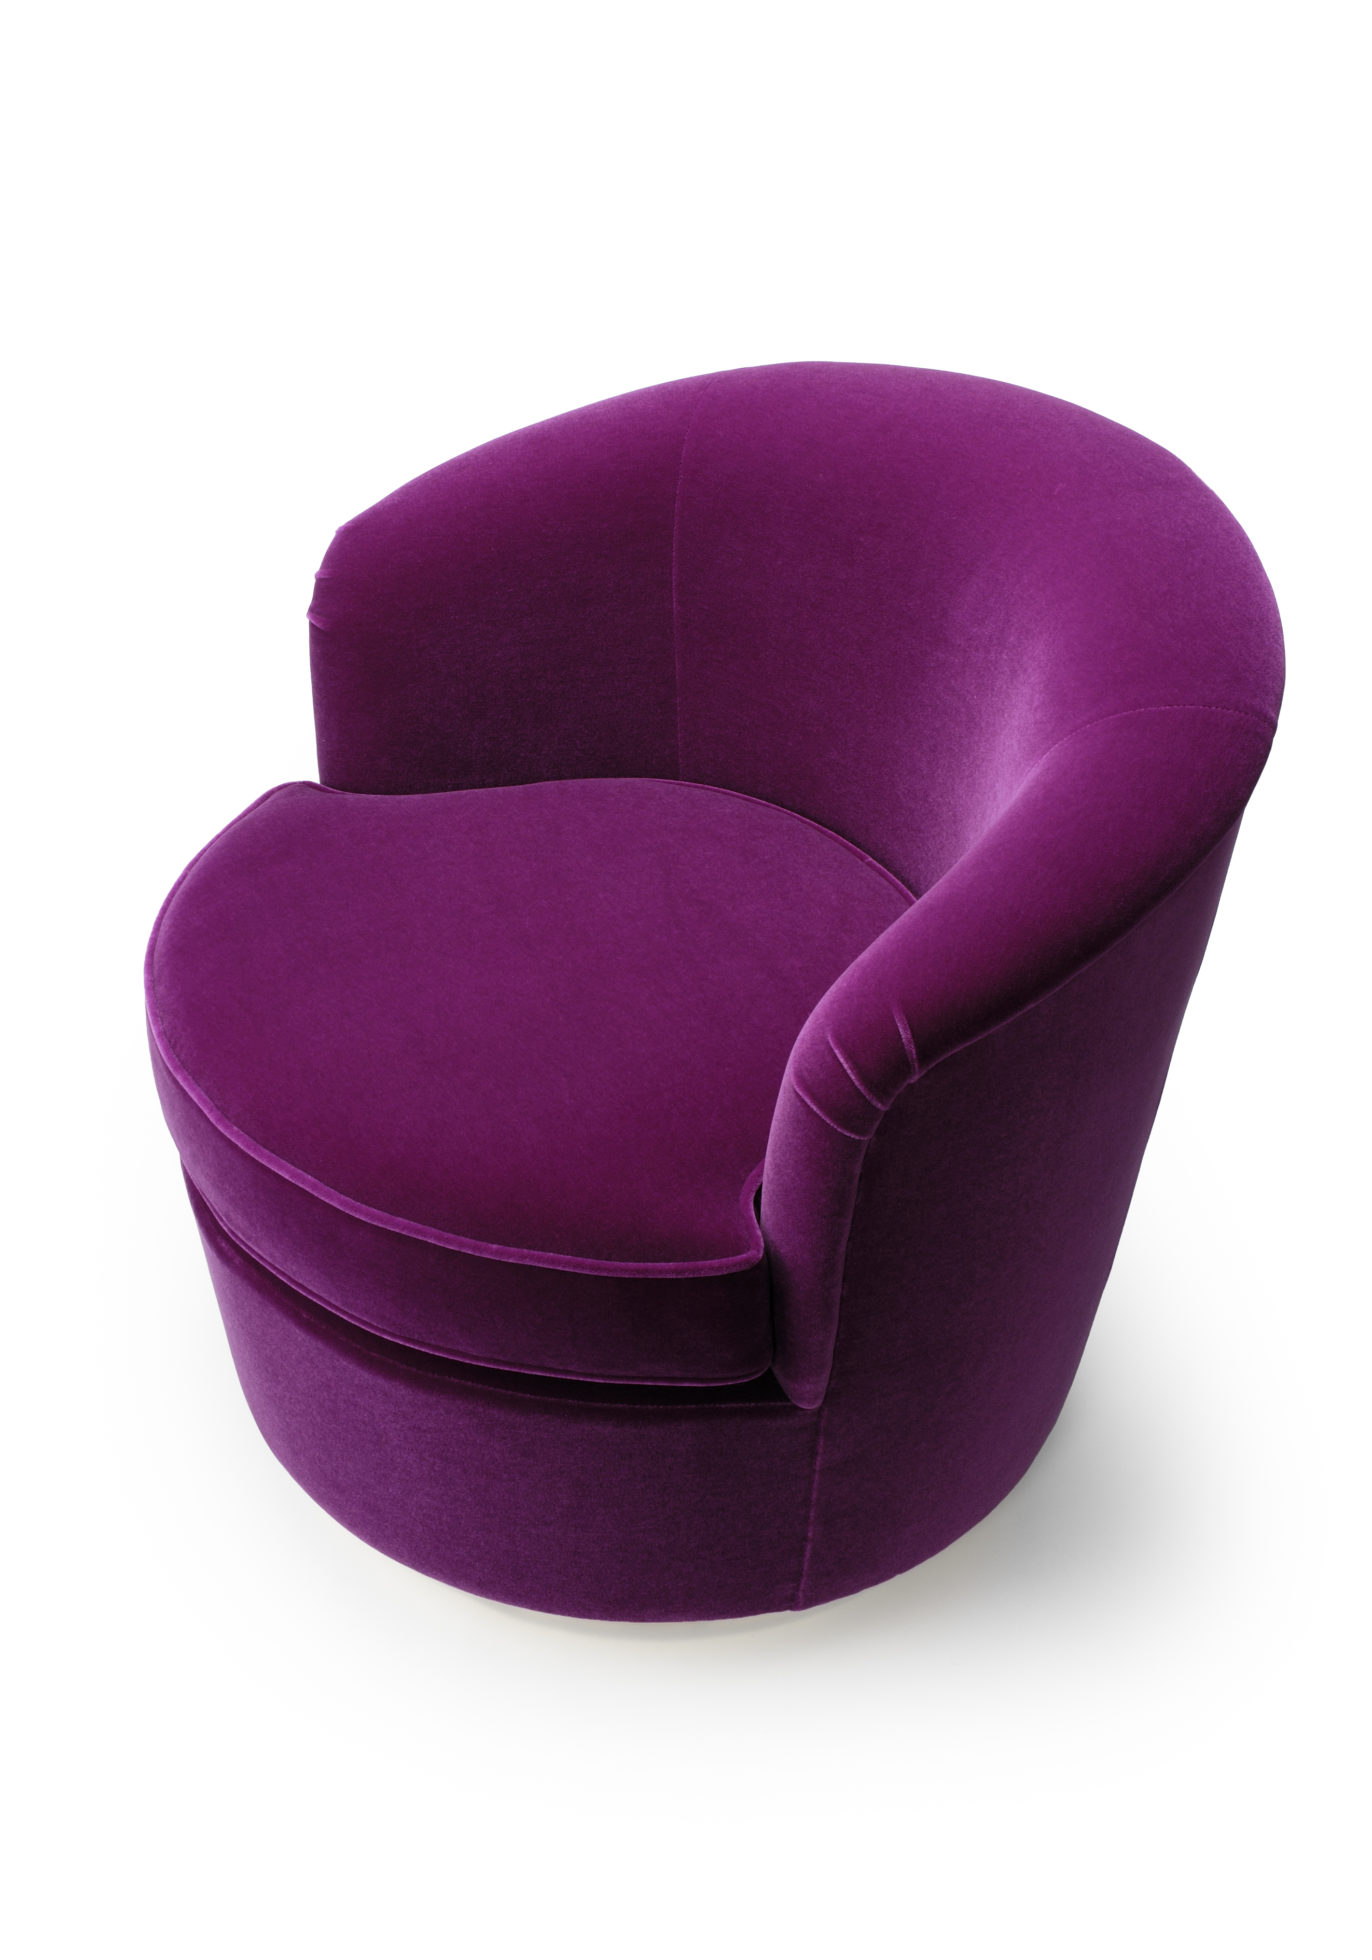 purple swivel chair folding tables and chairs for sale floradora amy somerville london image of